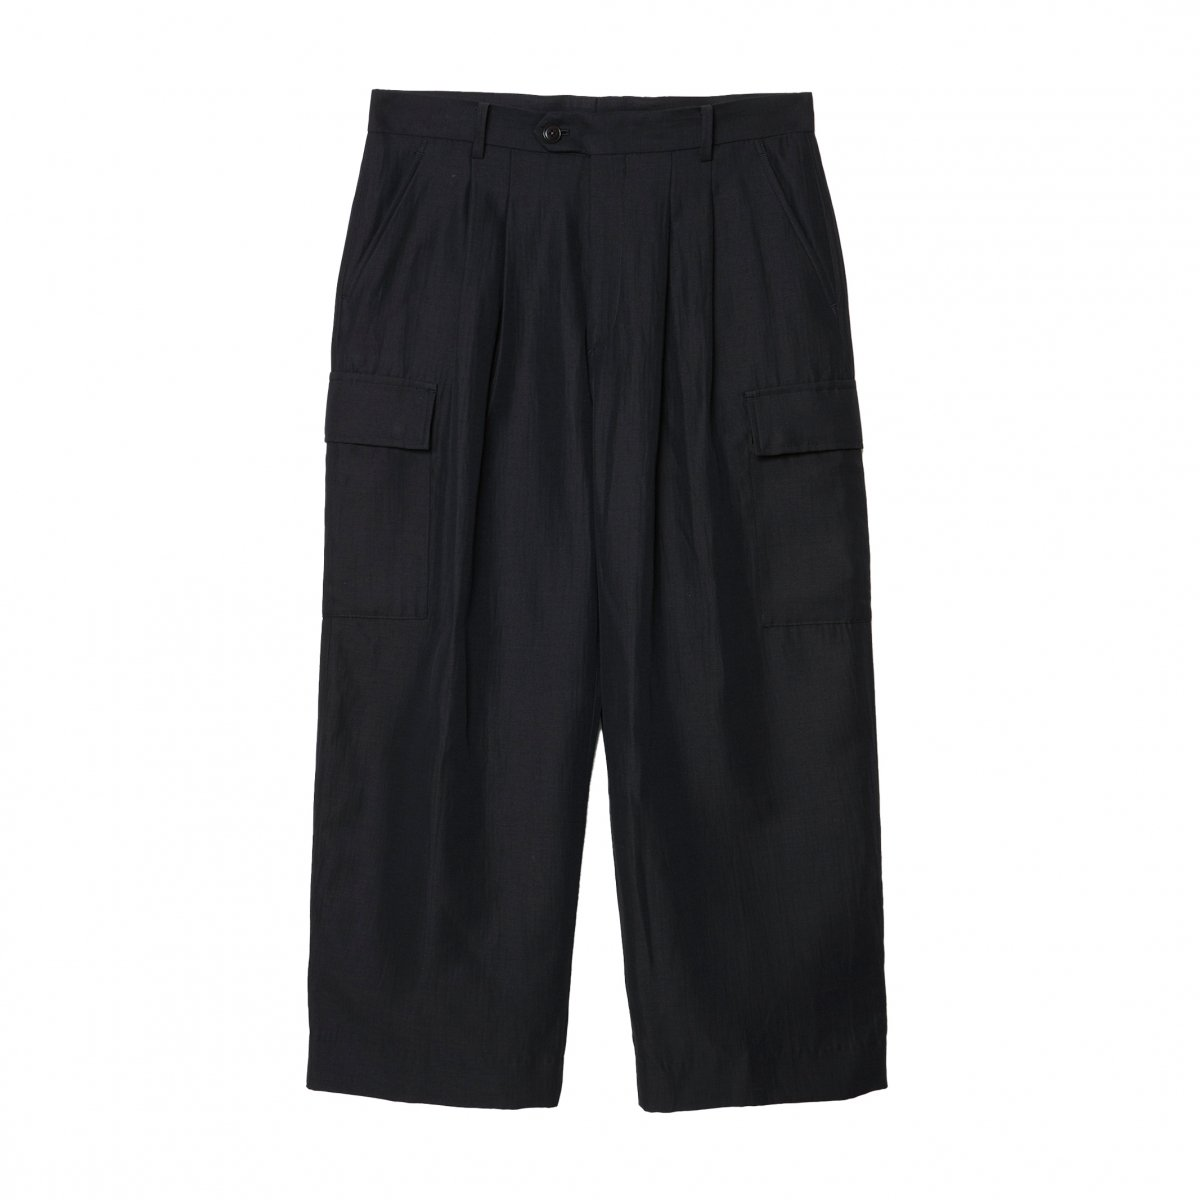 <img class='new_mark_img1' src='https://img.shop-pro.jp/img/new/icons5.gif' style='border:none;display:inline;margin:0px;padding:0px;width:auto;' />DOUBLE WEAVE WIDE CARGO TROUSERS / BLACK